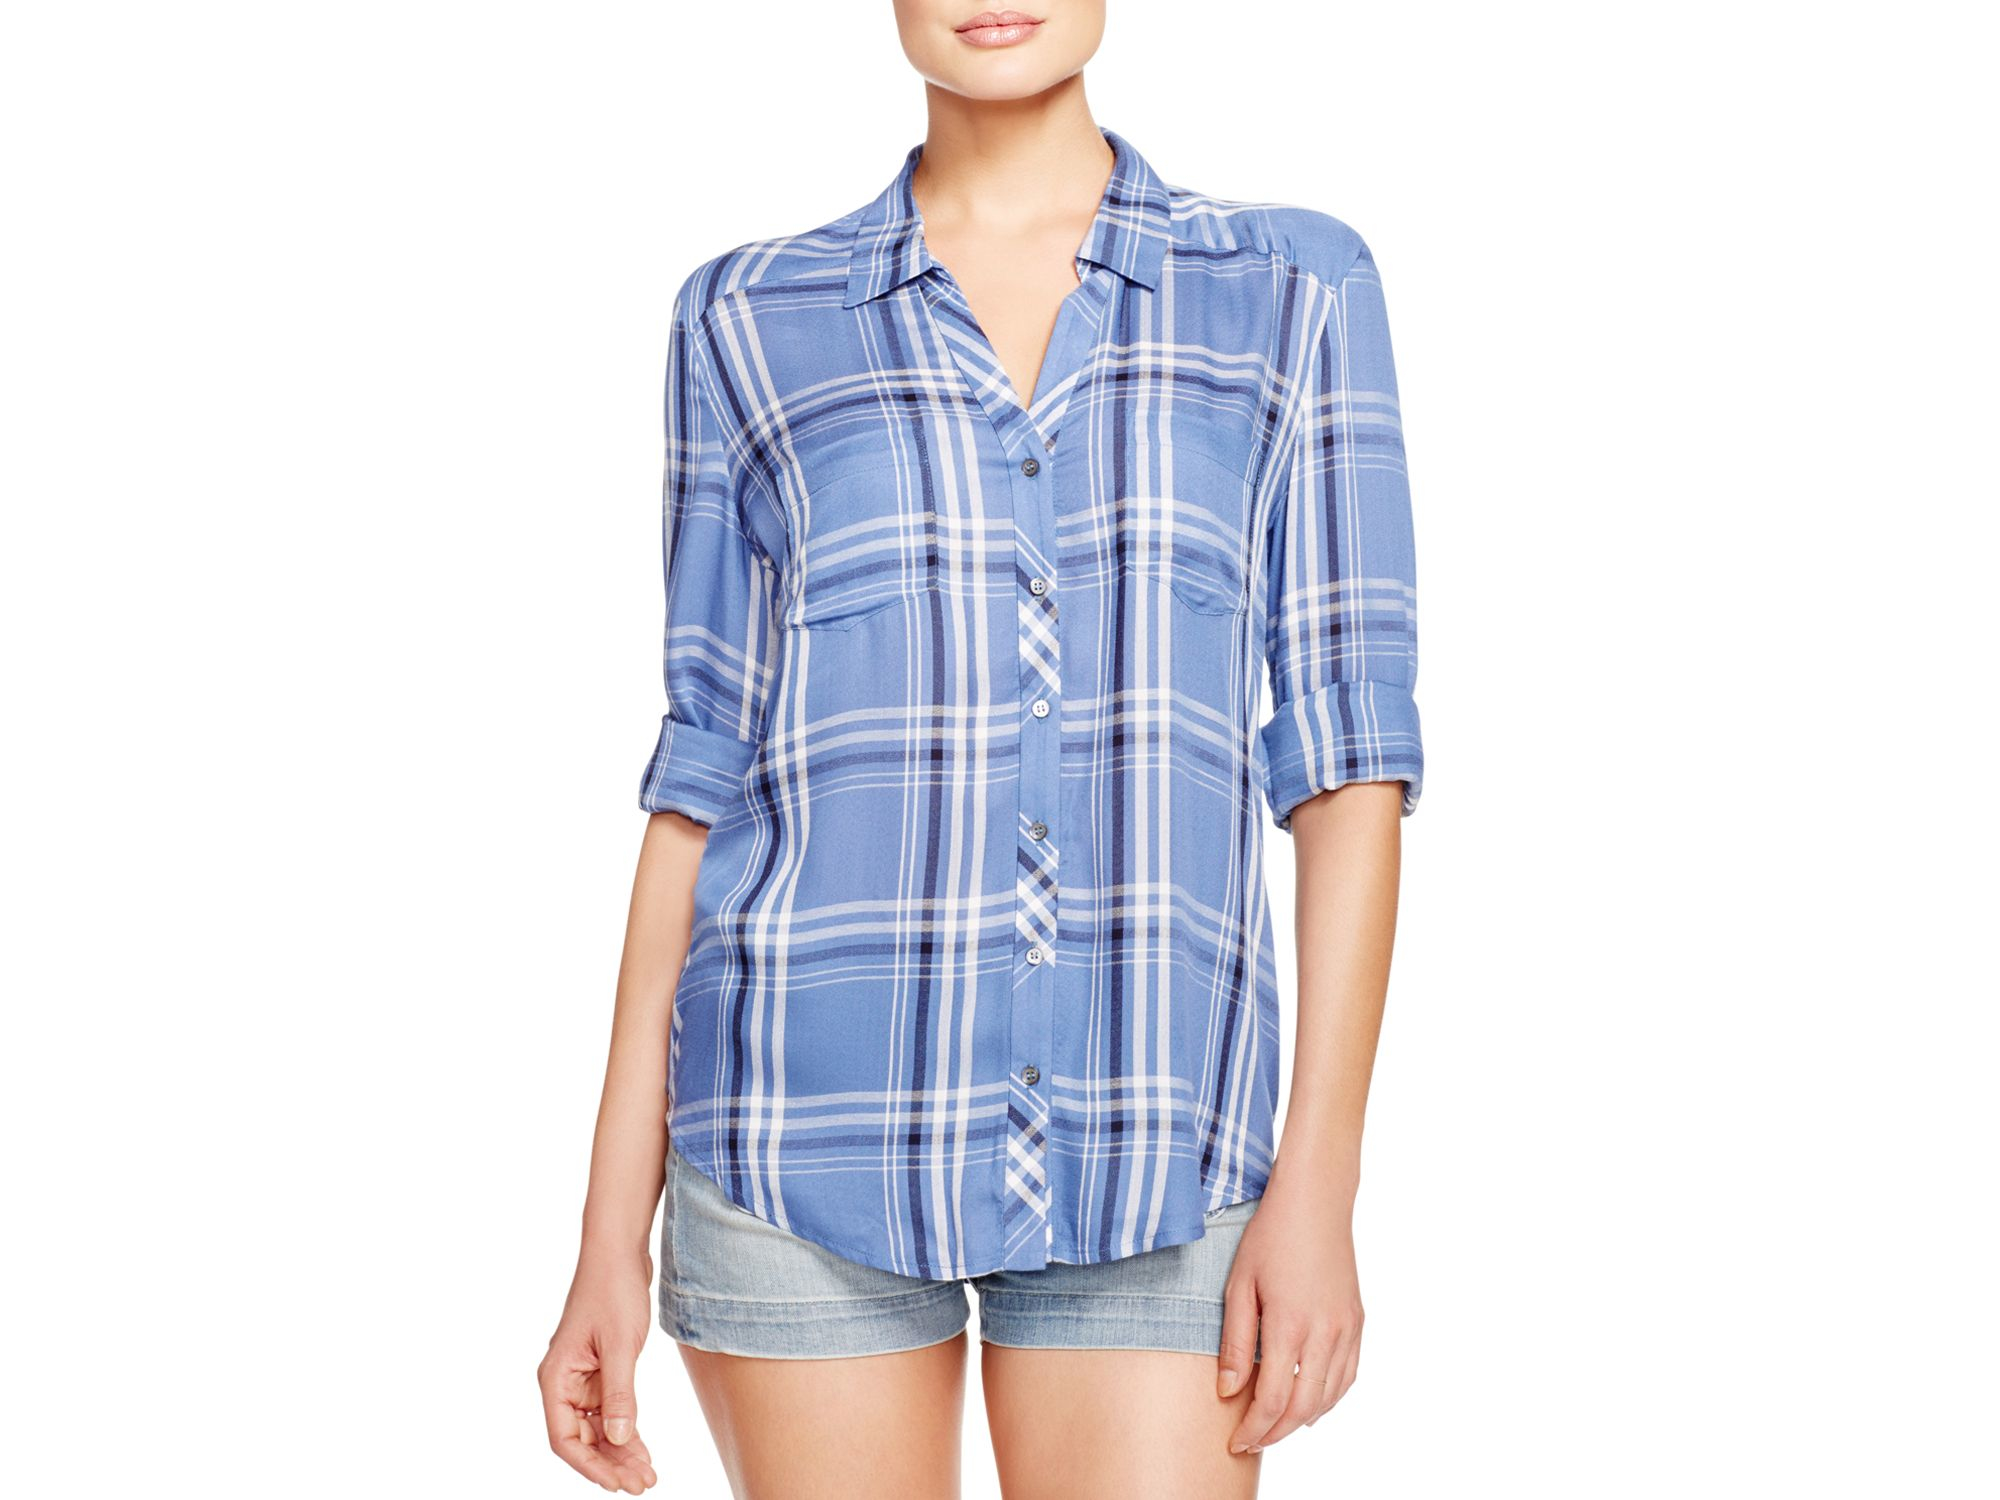 Soft joie daesha b plaid shirt in blue lyst for Soft joie plaid shirt